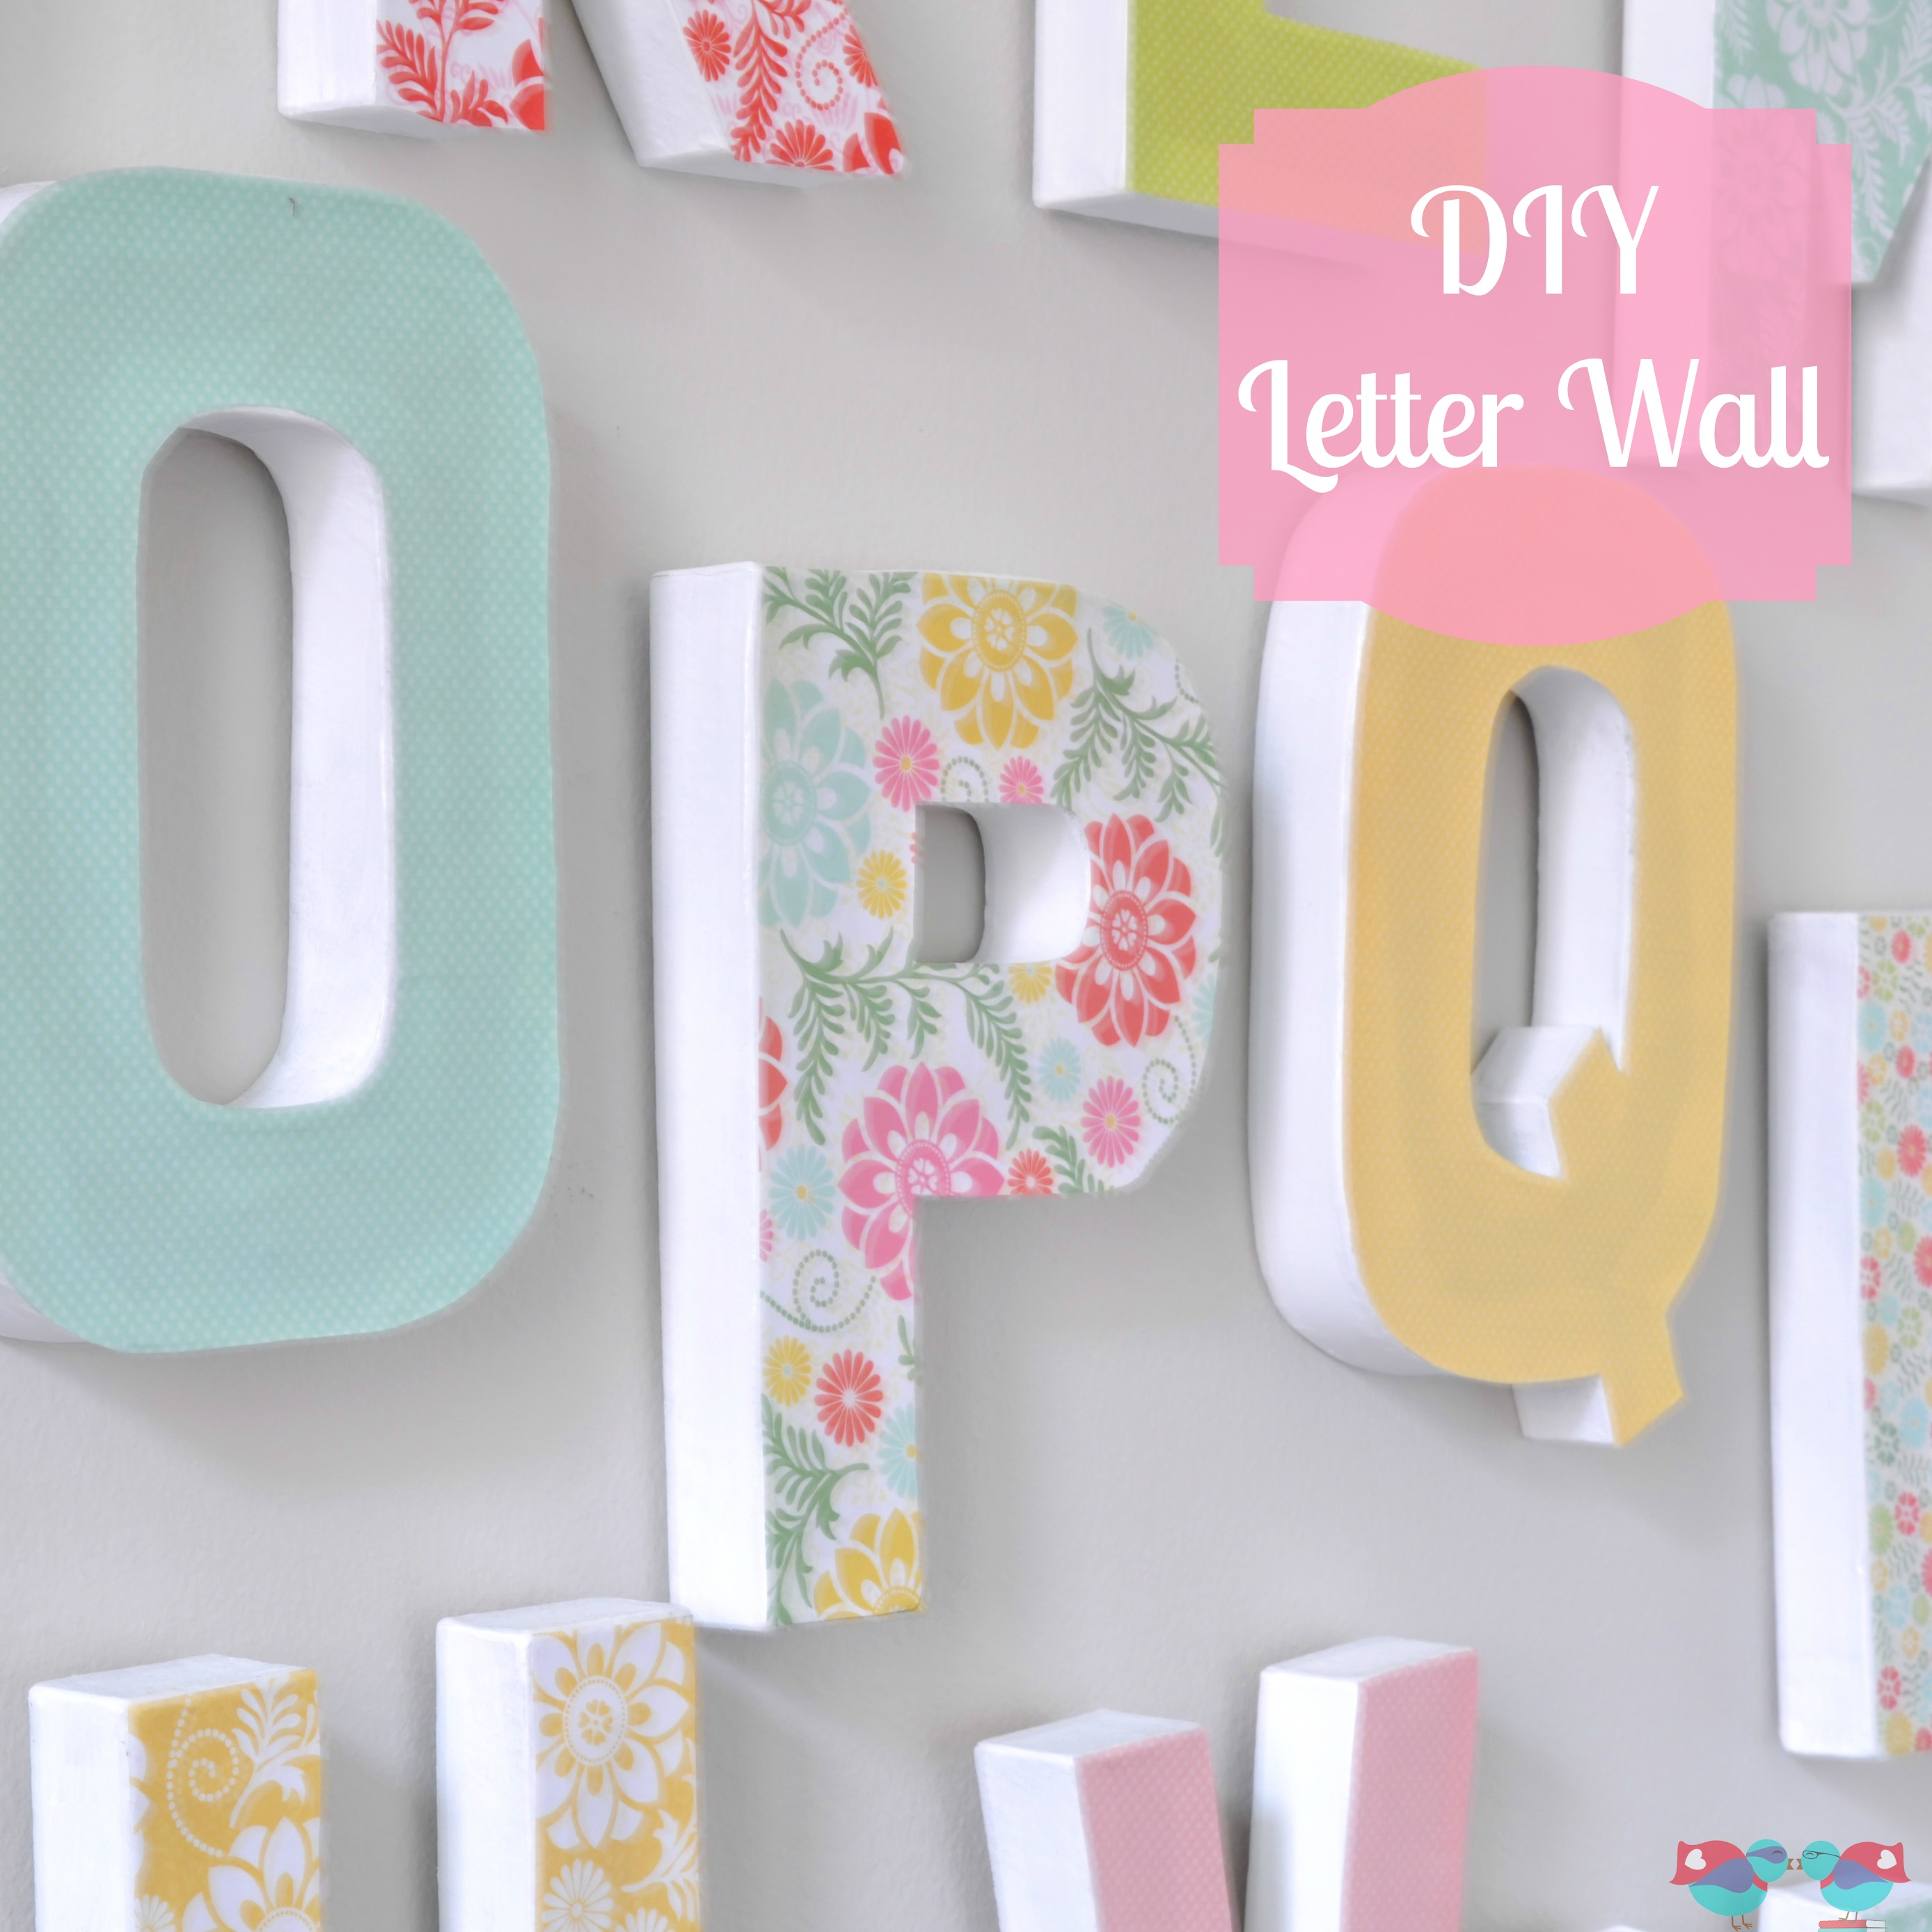 diy letter wall decor the love nerds. Black Bedroom Furniture Sets. Home Design Ideas